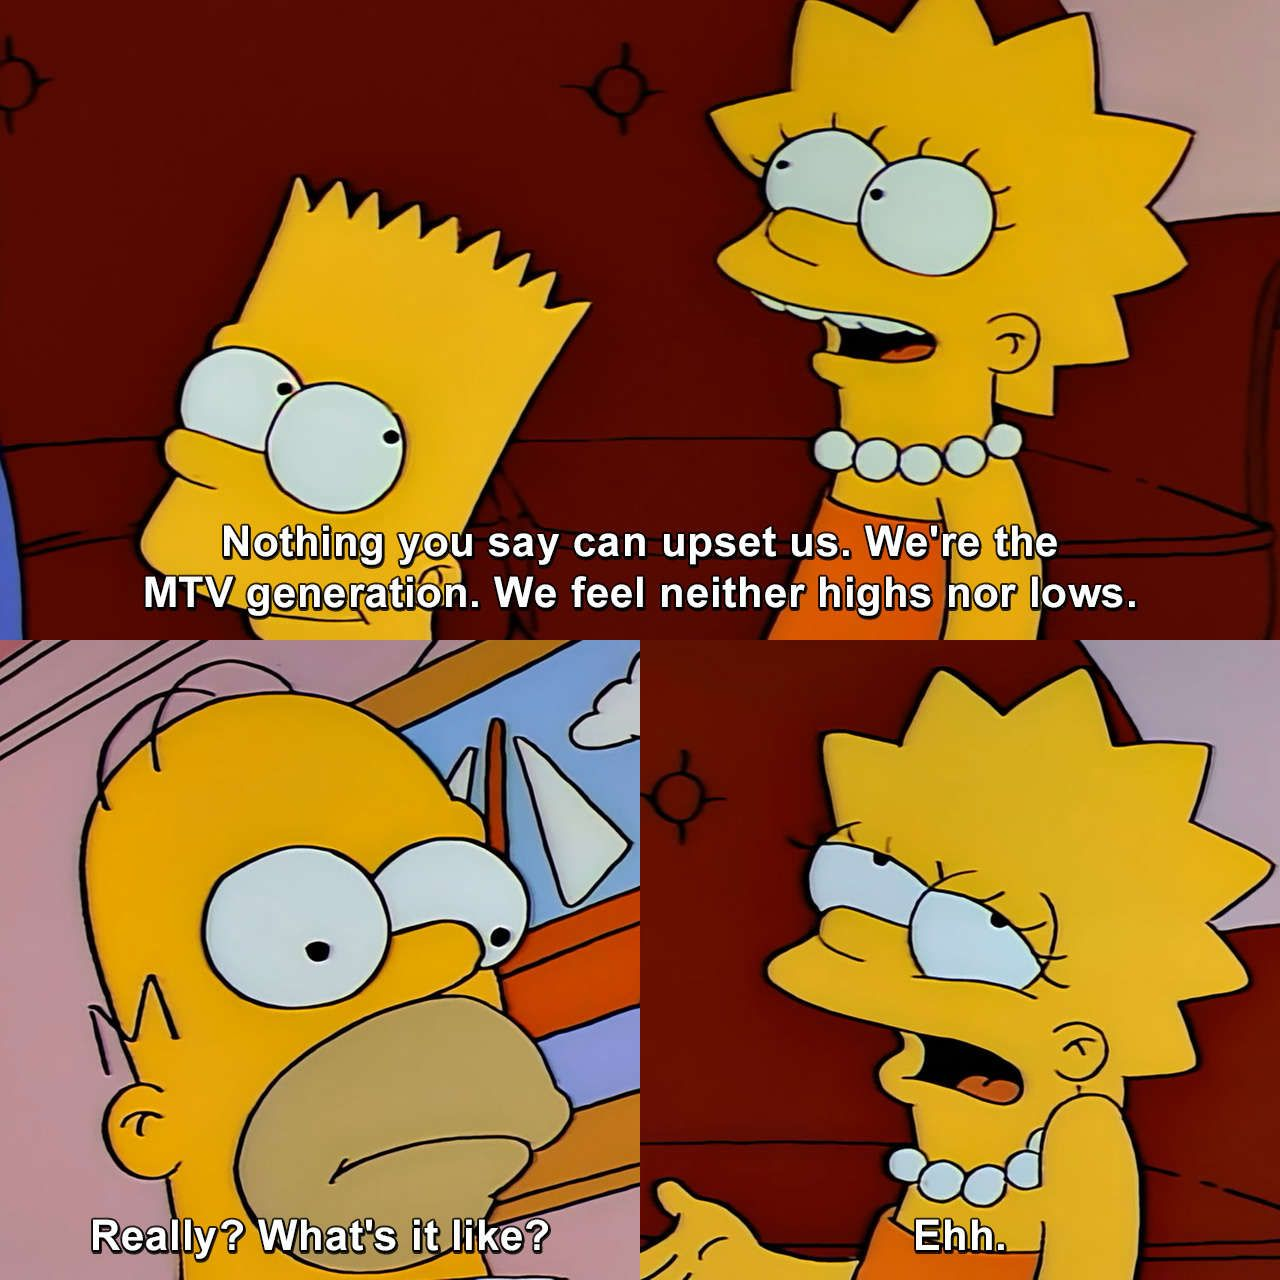 Funny The Simpsons Quotes at tvgag.com | Simpsons meme ...